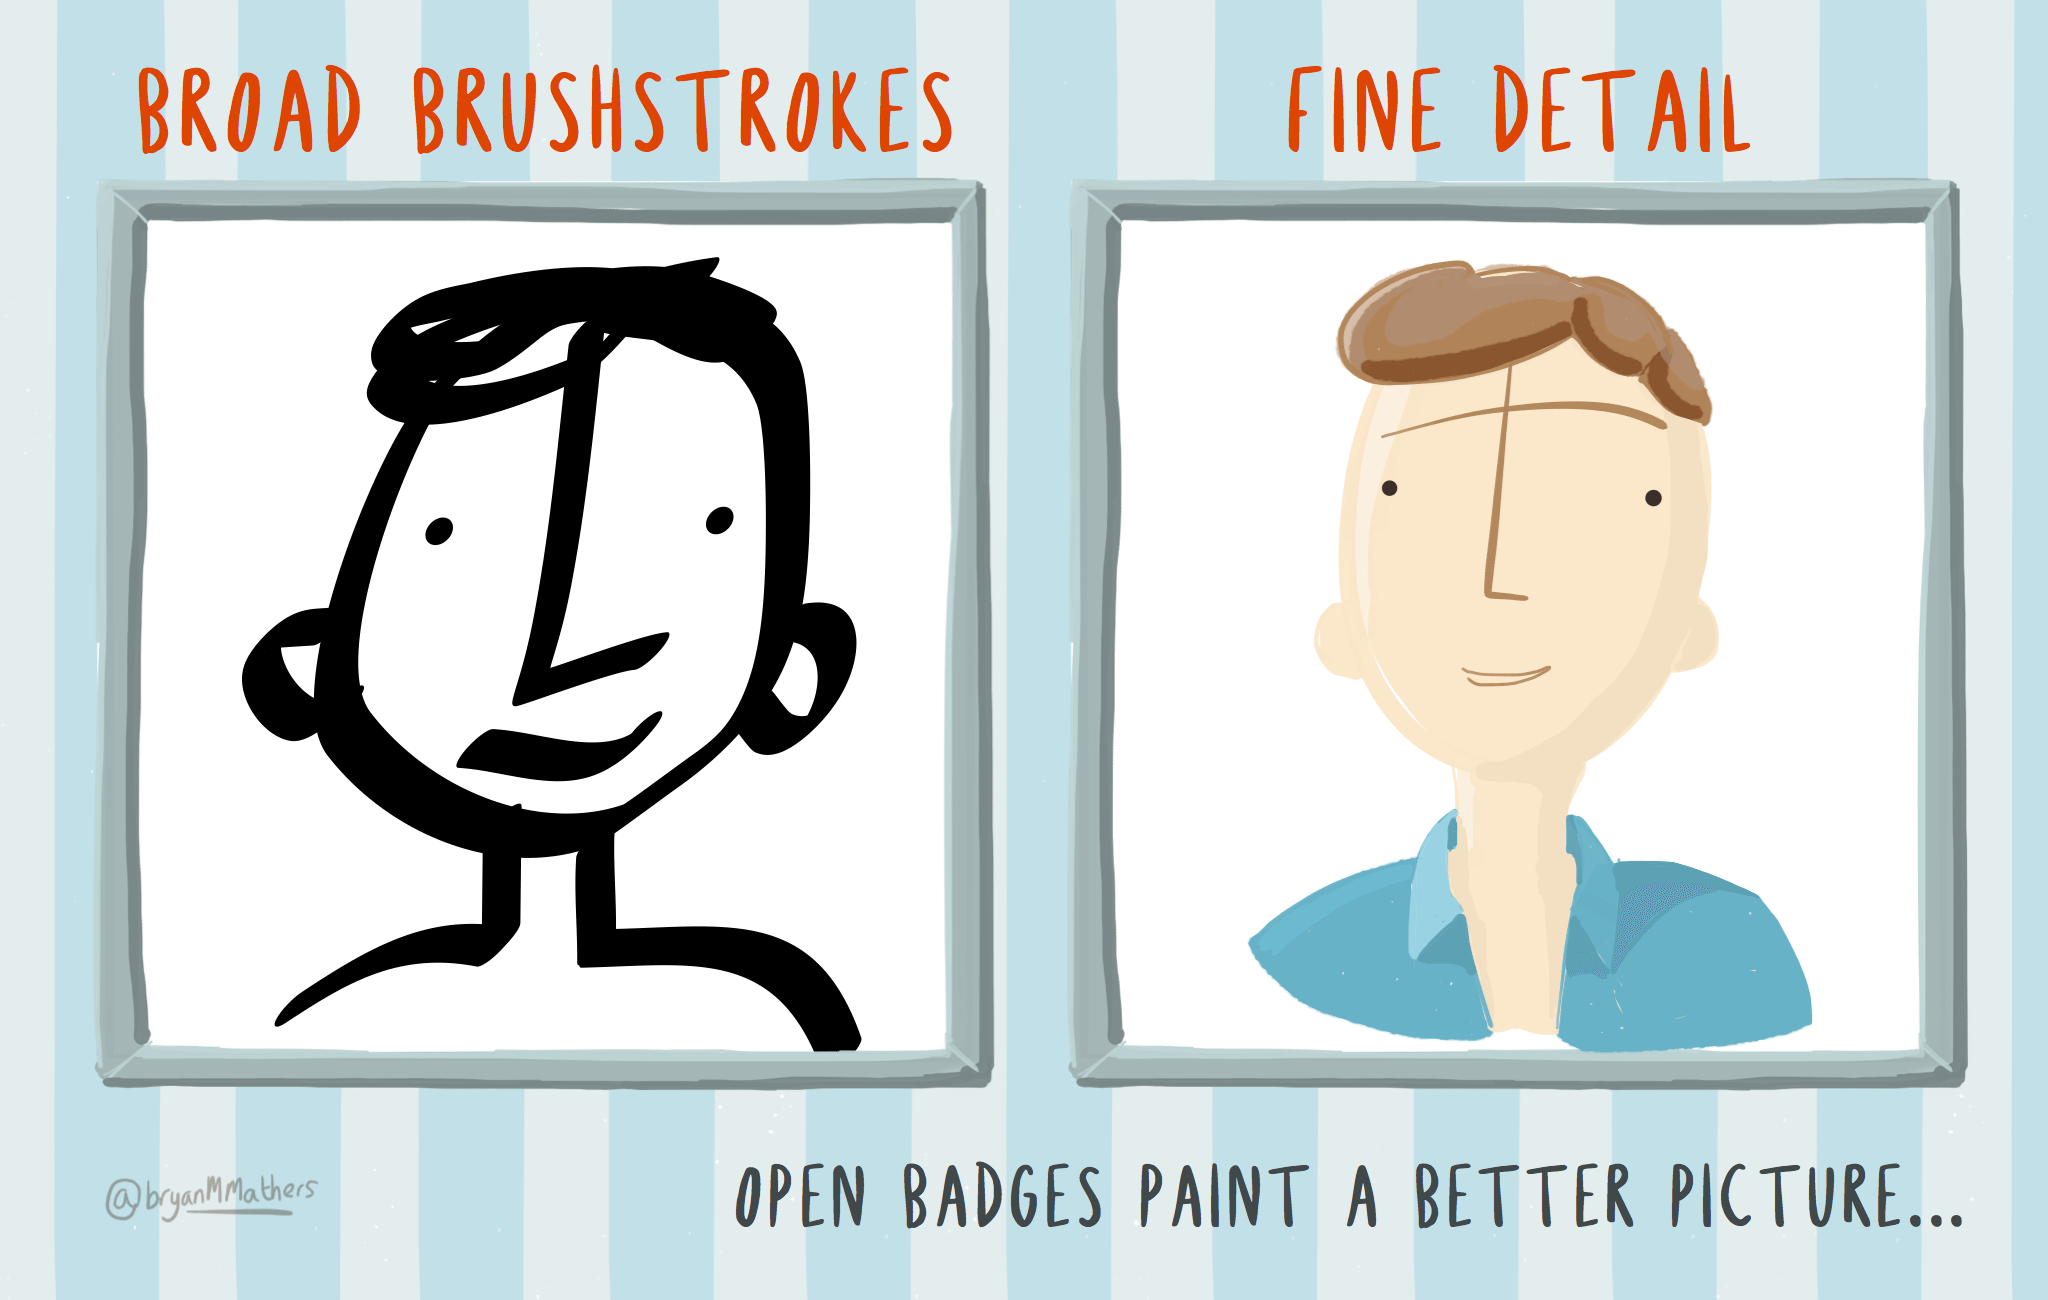 Open Badges paint a better picture…